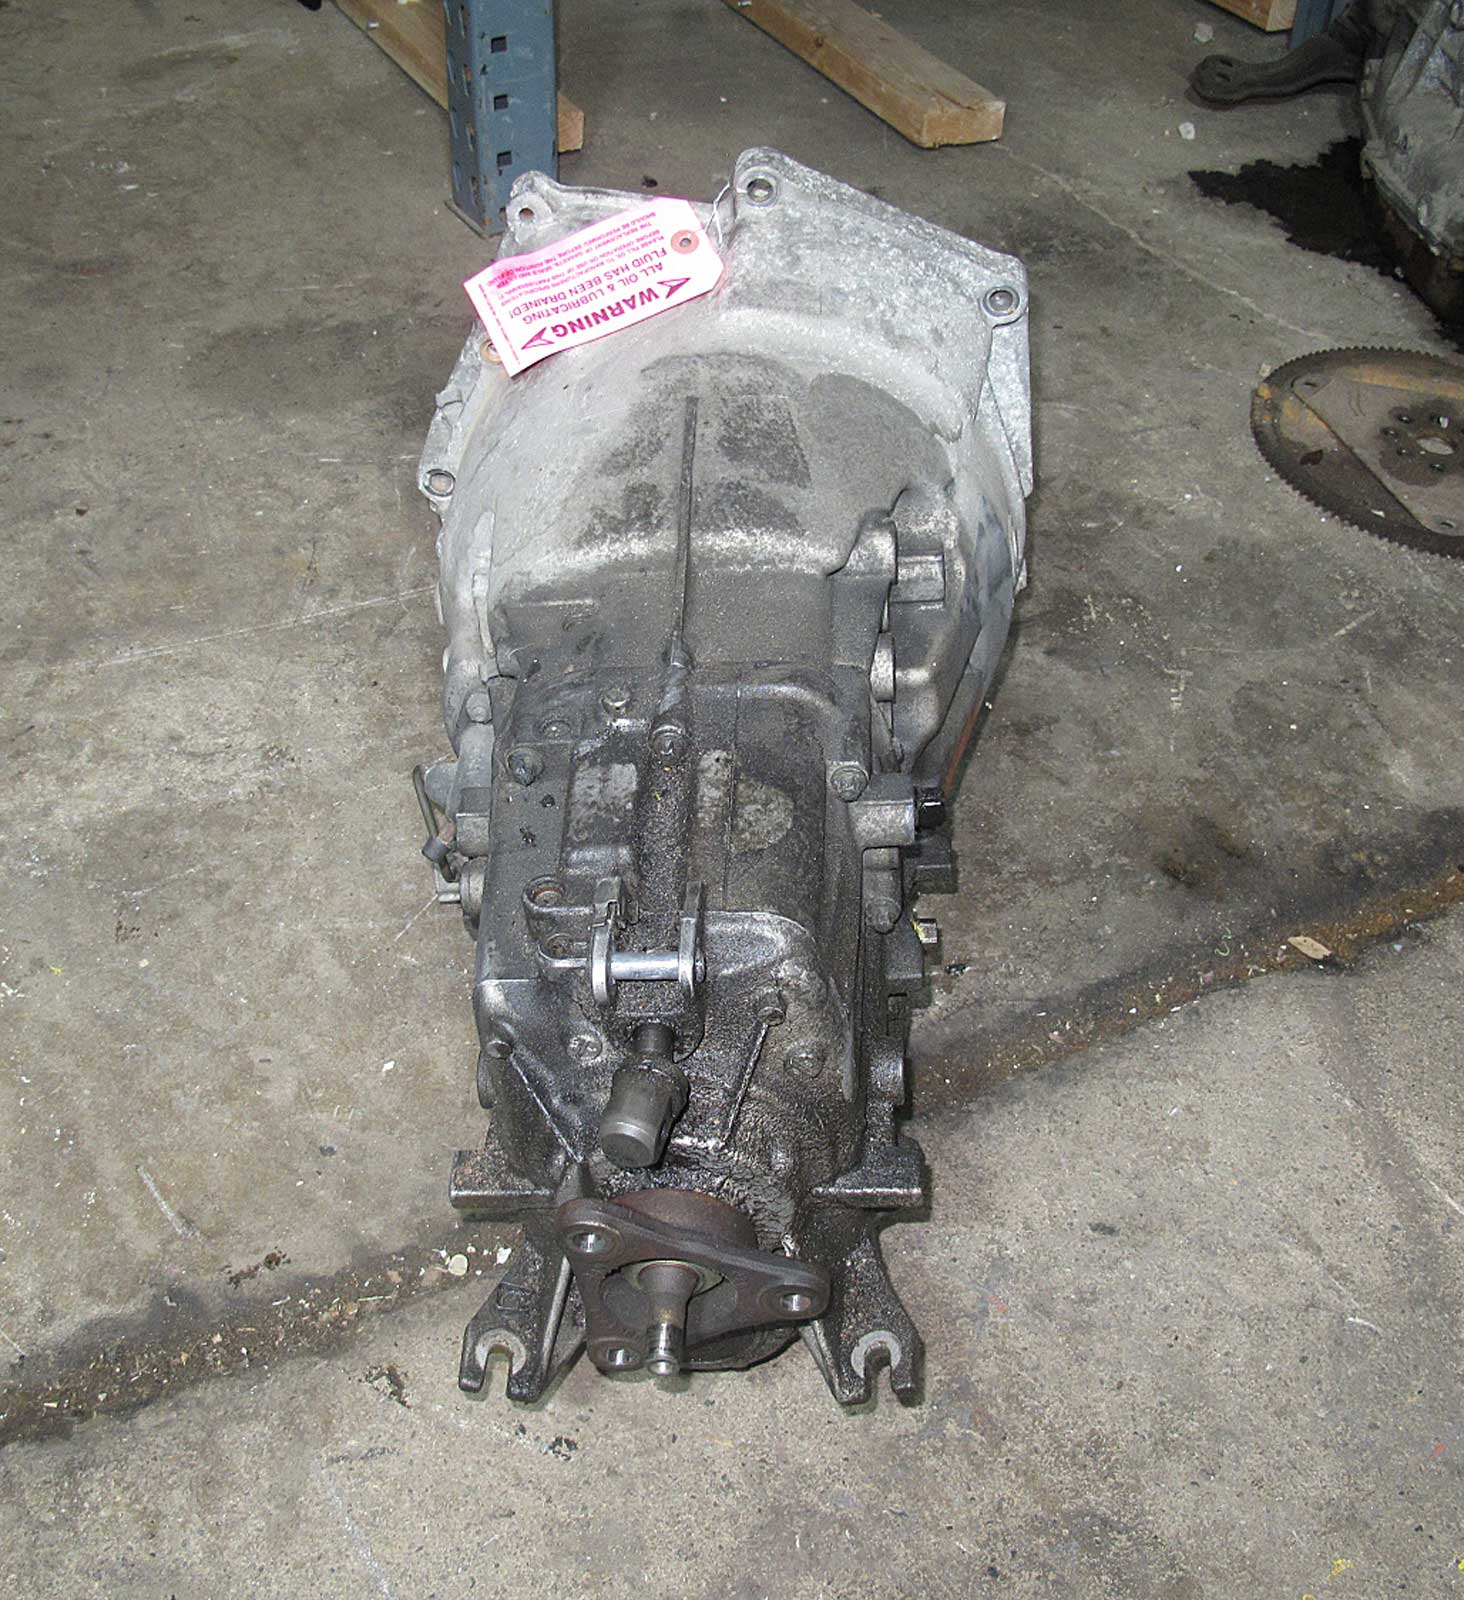 BMW M52 S52 ZF 5-Speed Manual Transmission Gearbox S5D